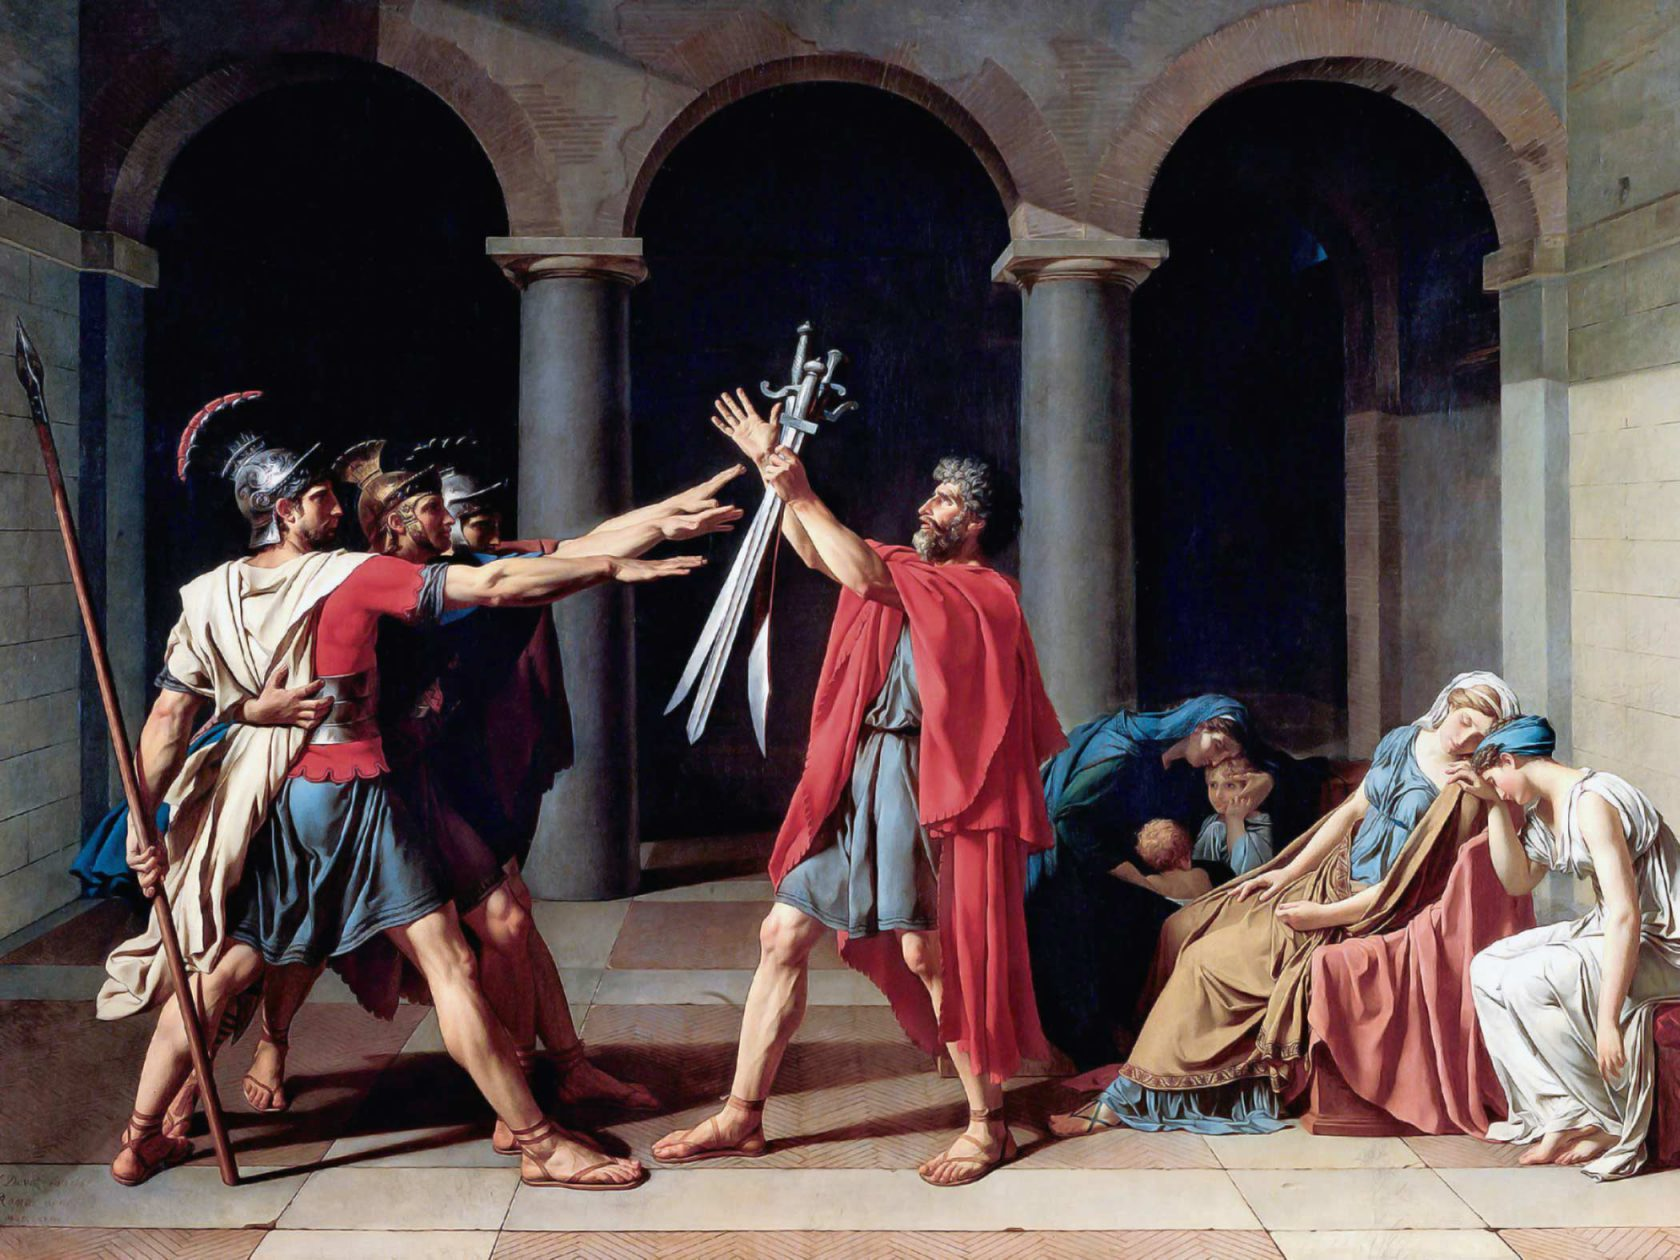 Titel: 'Der Schwur der Horatier', Louis Boilly, Jacques-Louis David, 1784 [Public domain], via Wikimedia Commons